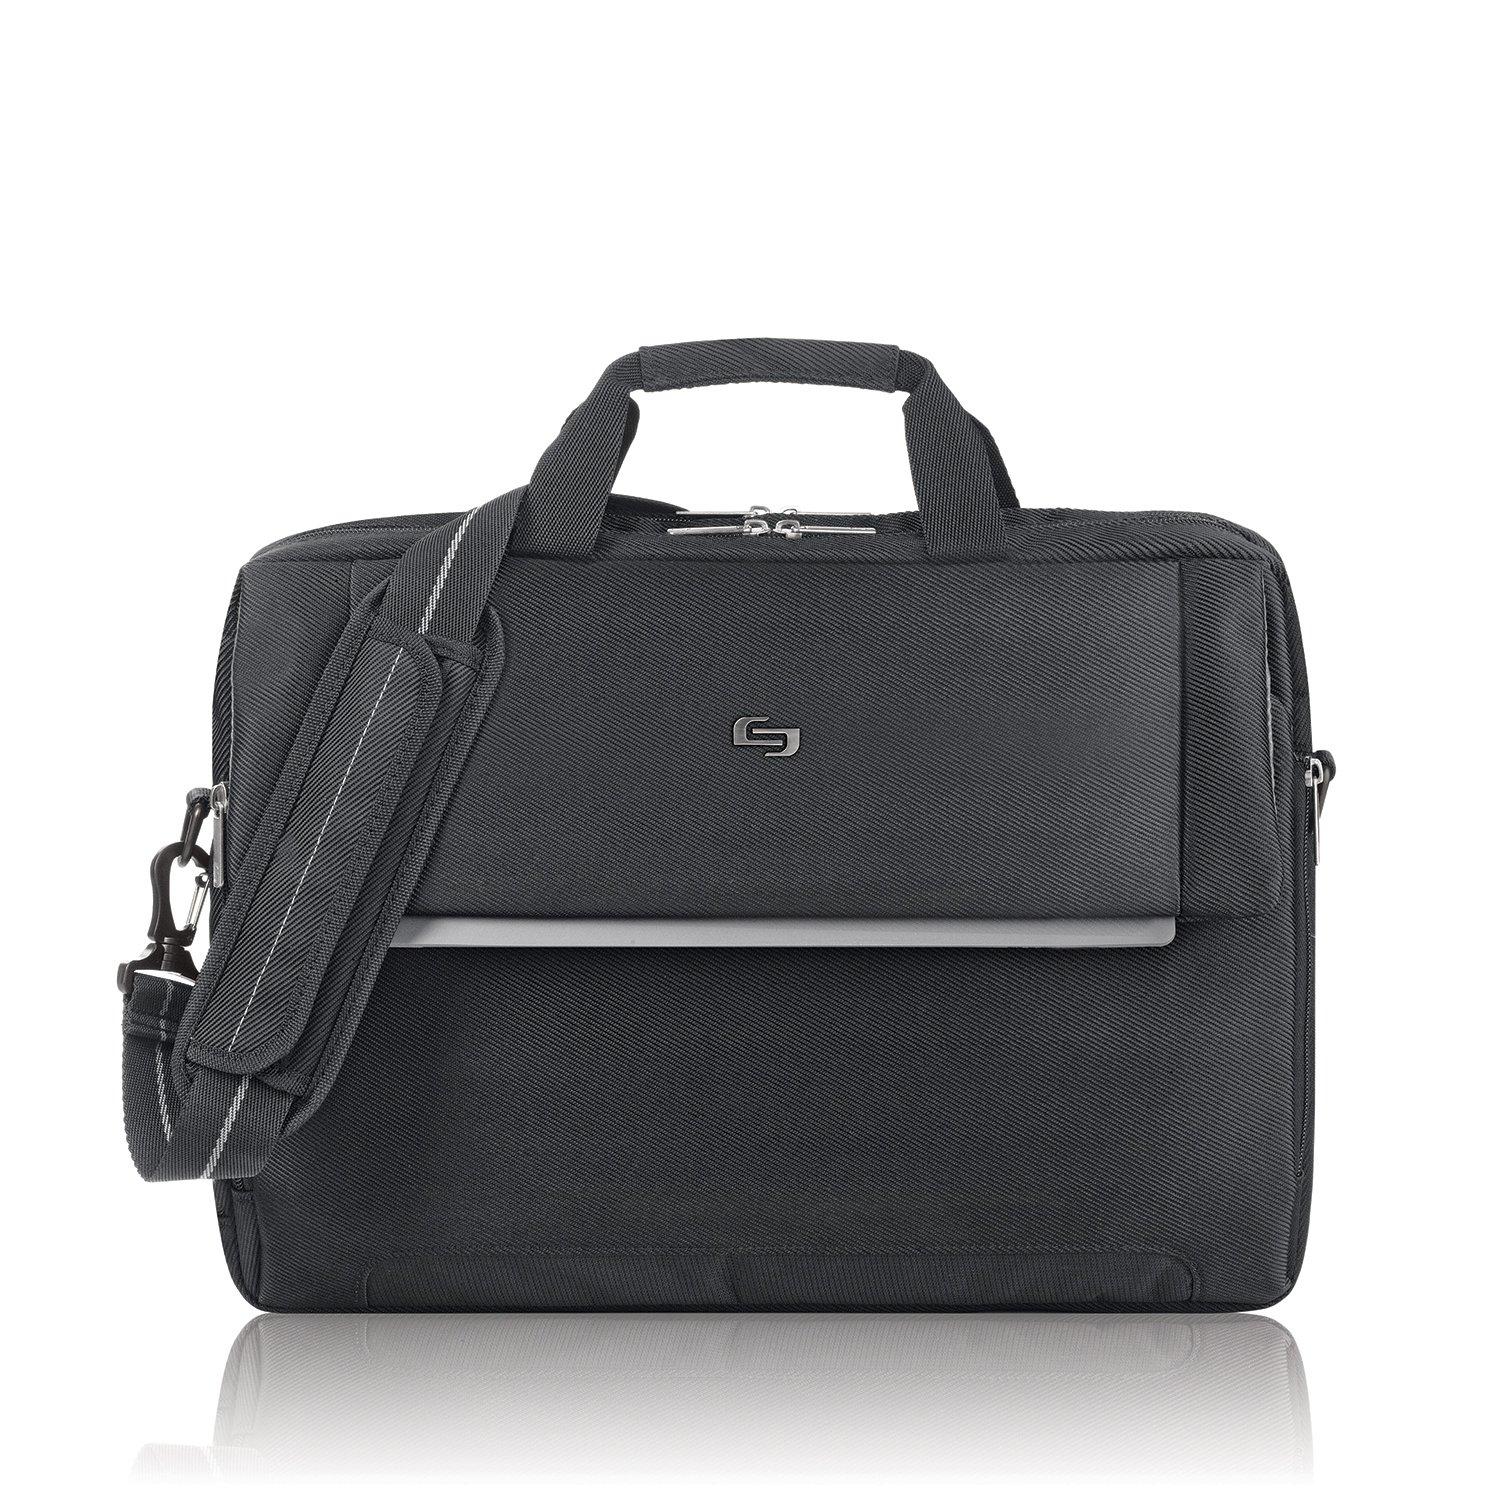 Solo Chrysler 17.3 Inch Laptop Briefcase, Black